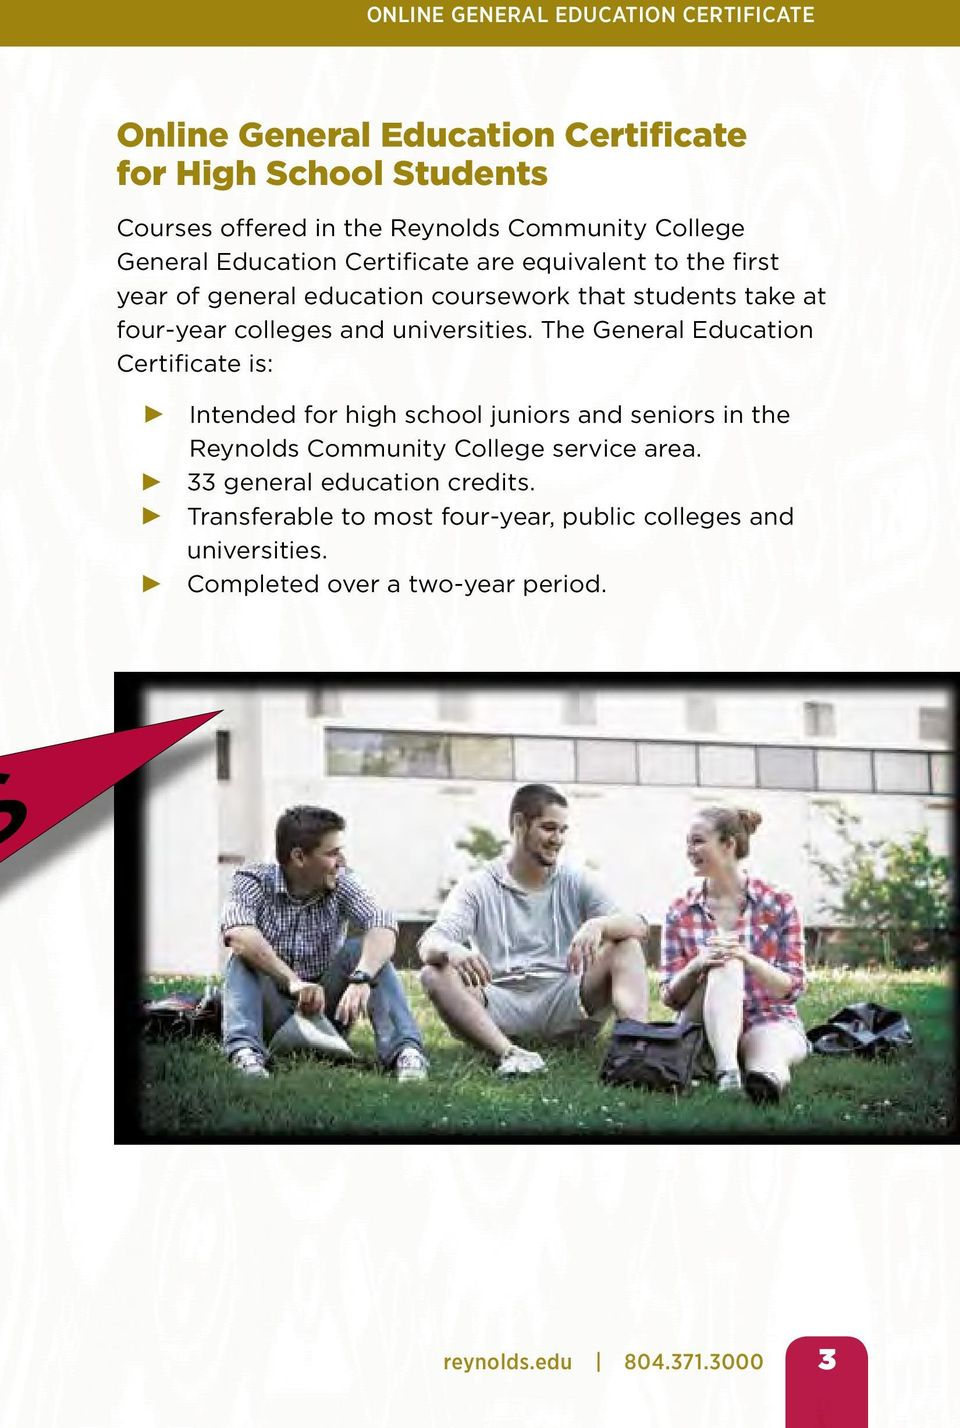 The General Education Certificate is: Intended for high school juniors and seniors in the Reynolds Community College service area.